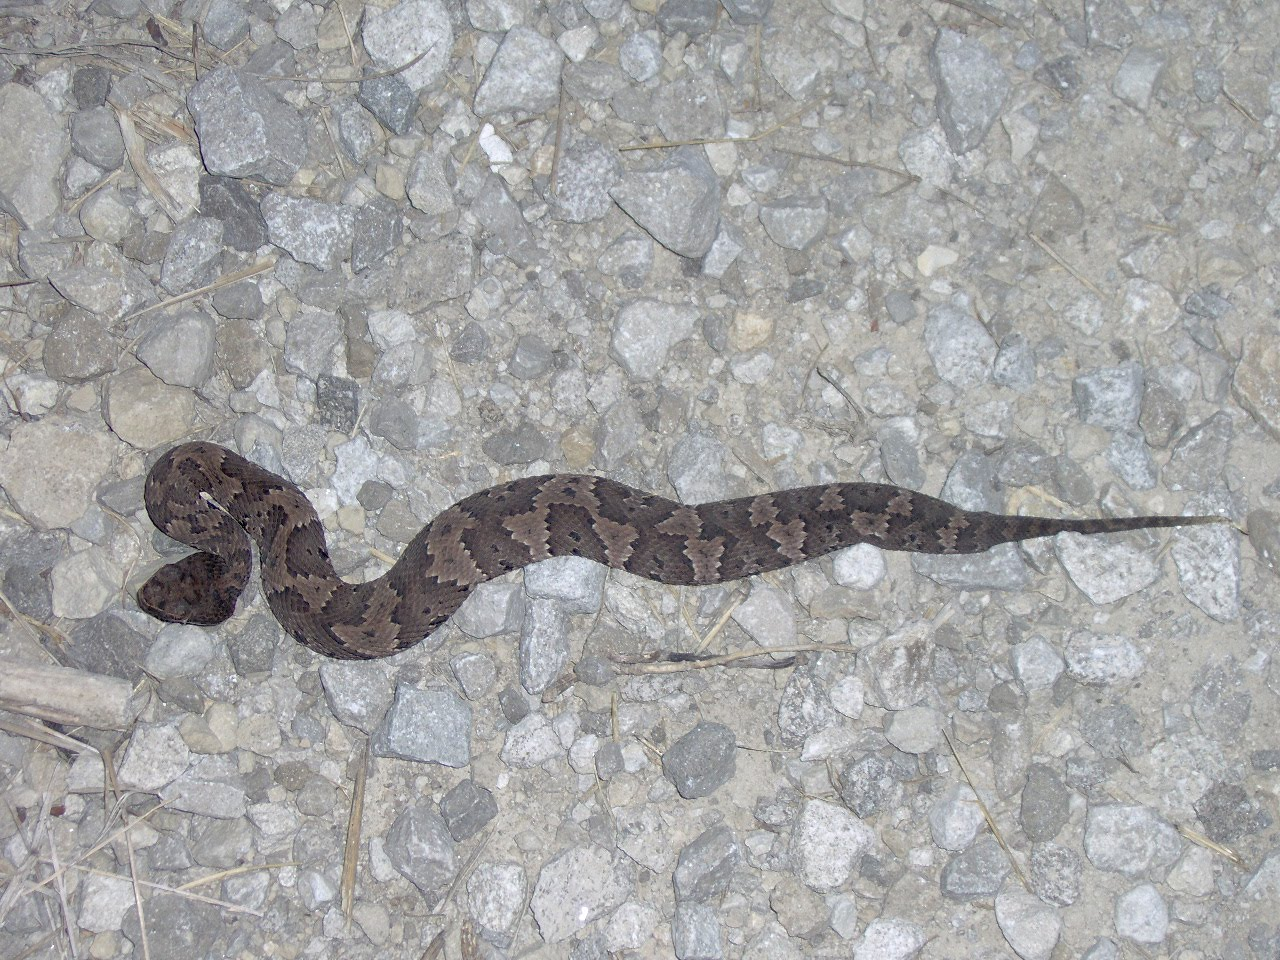 My Snakes: Baby Cottonmouth